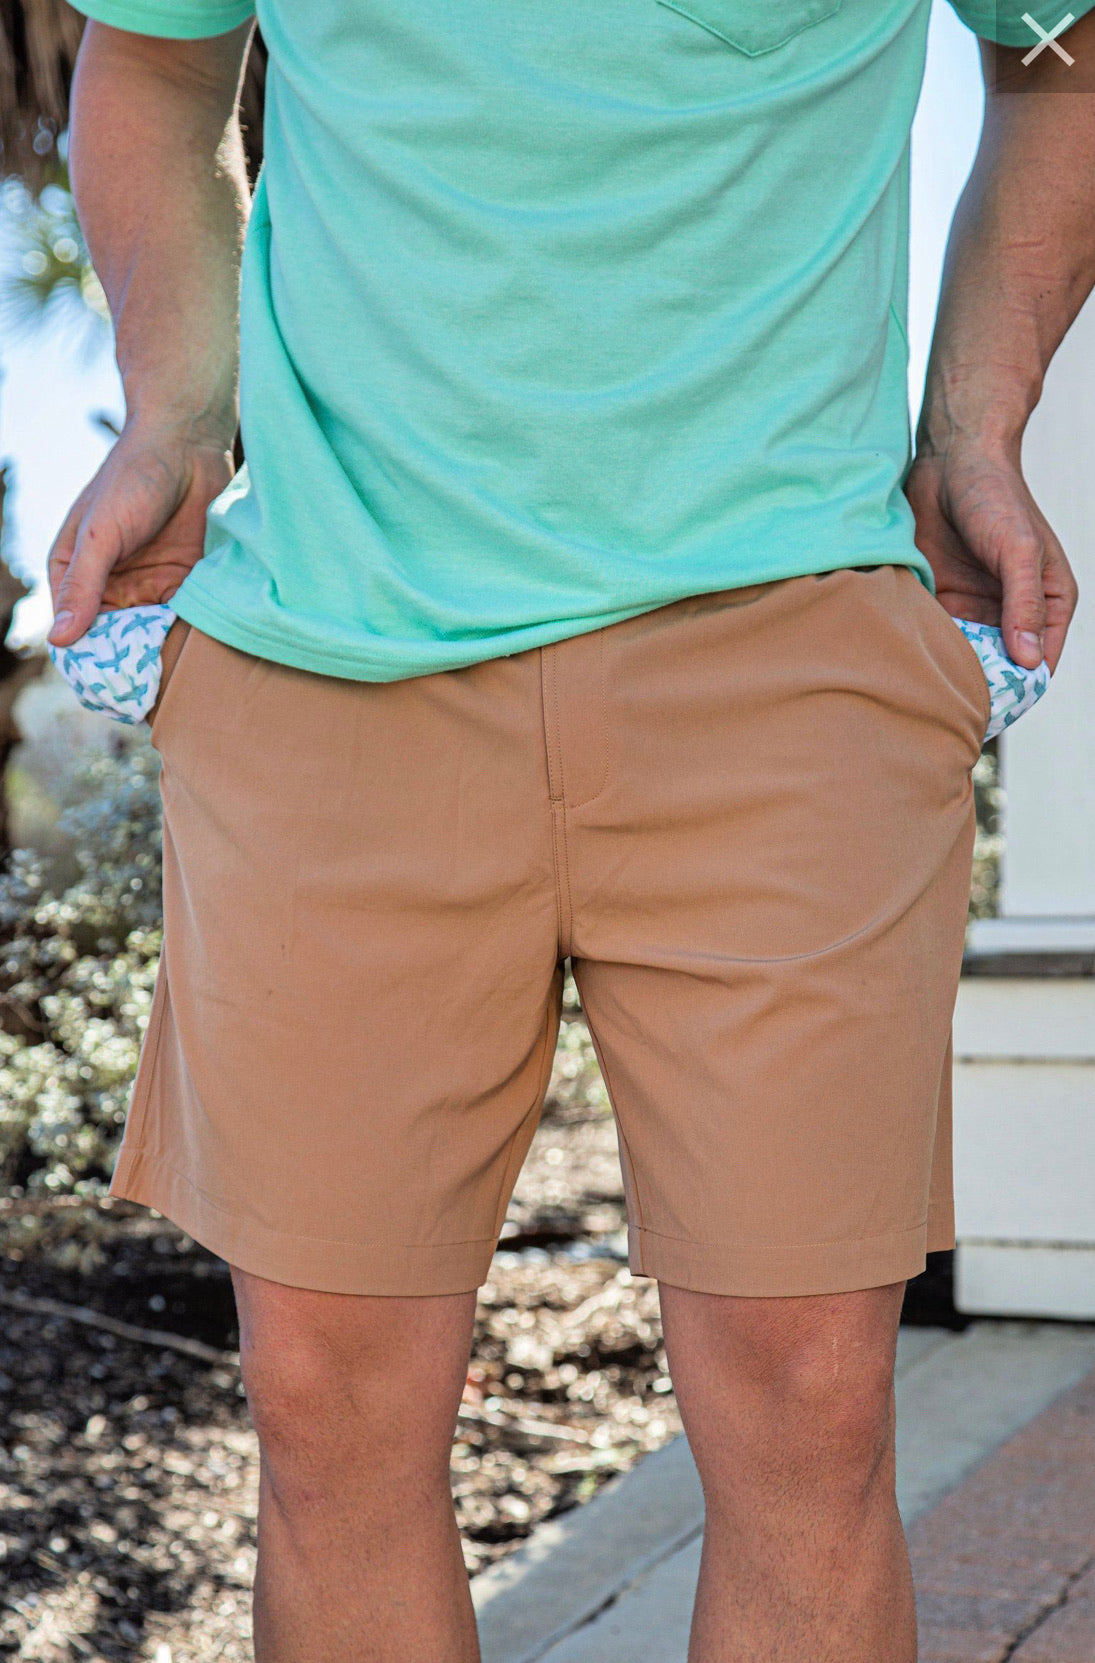 Burlebo Desert Tan Performance Shorts